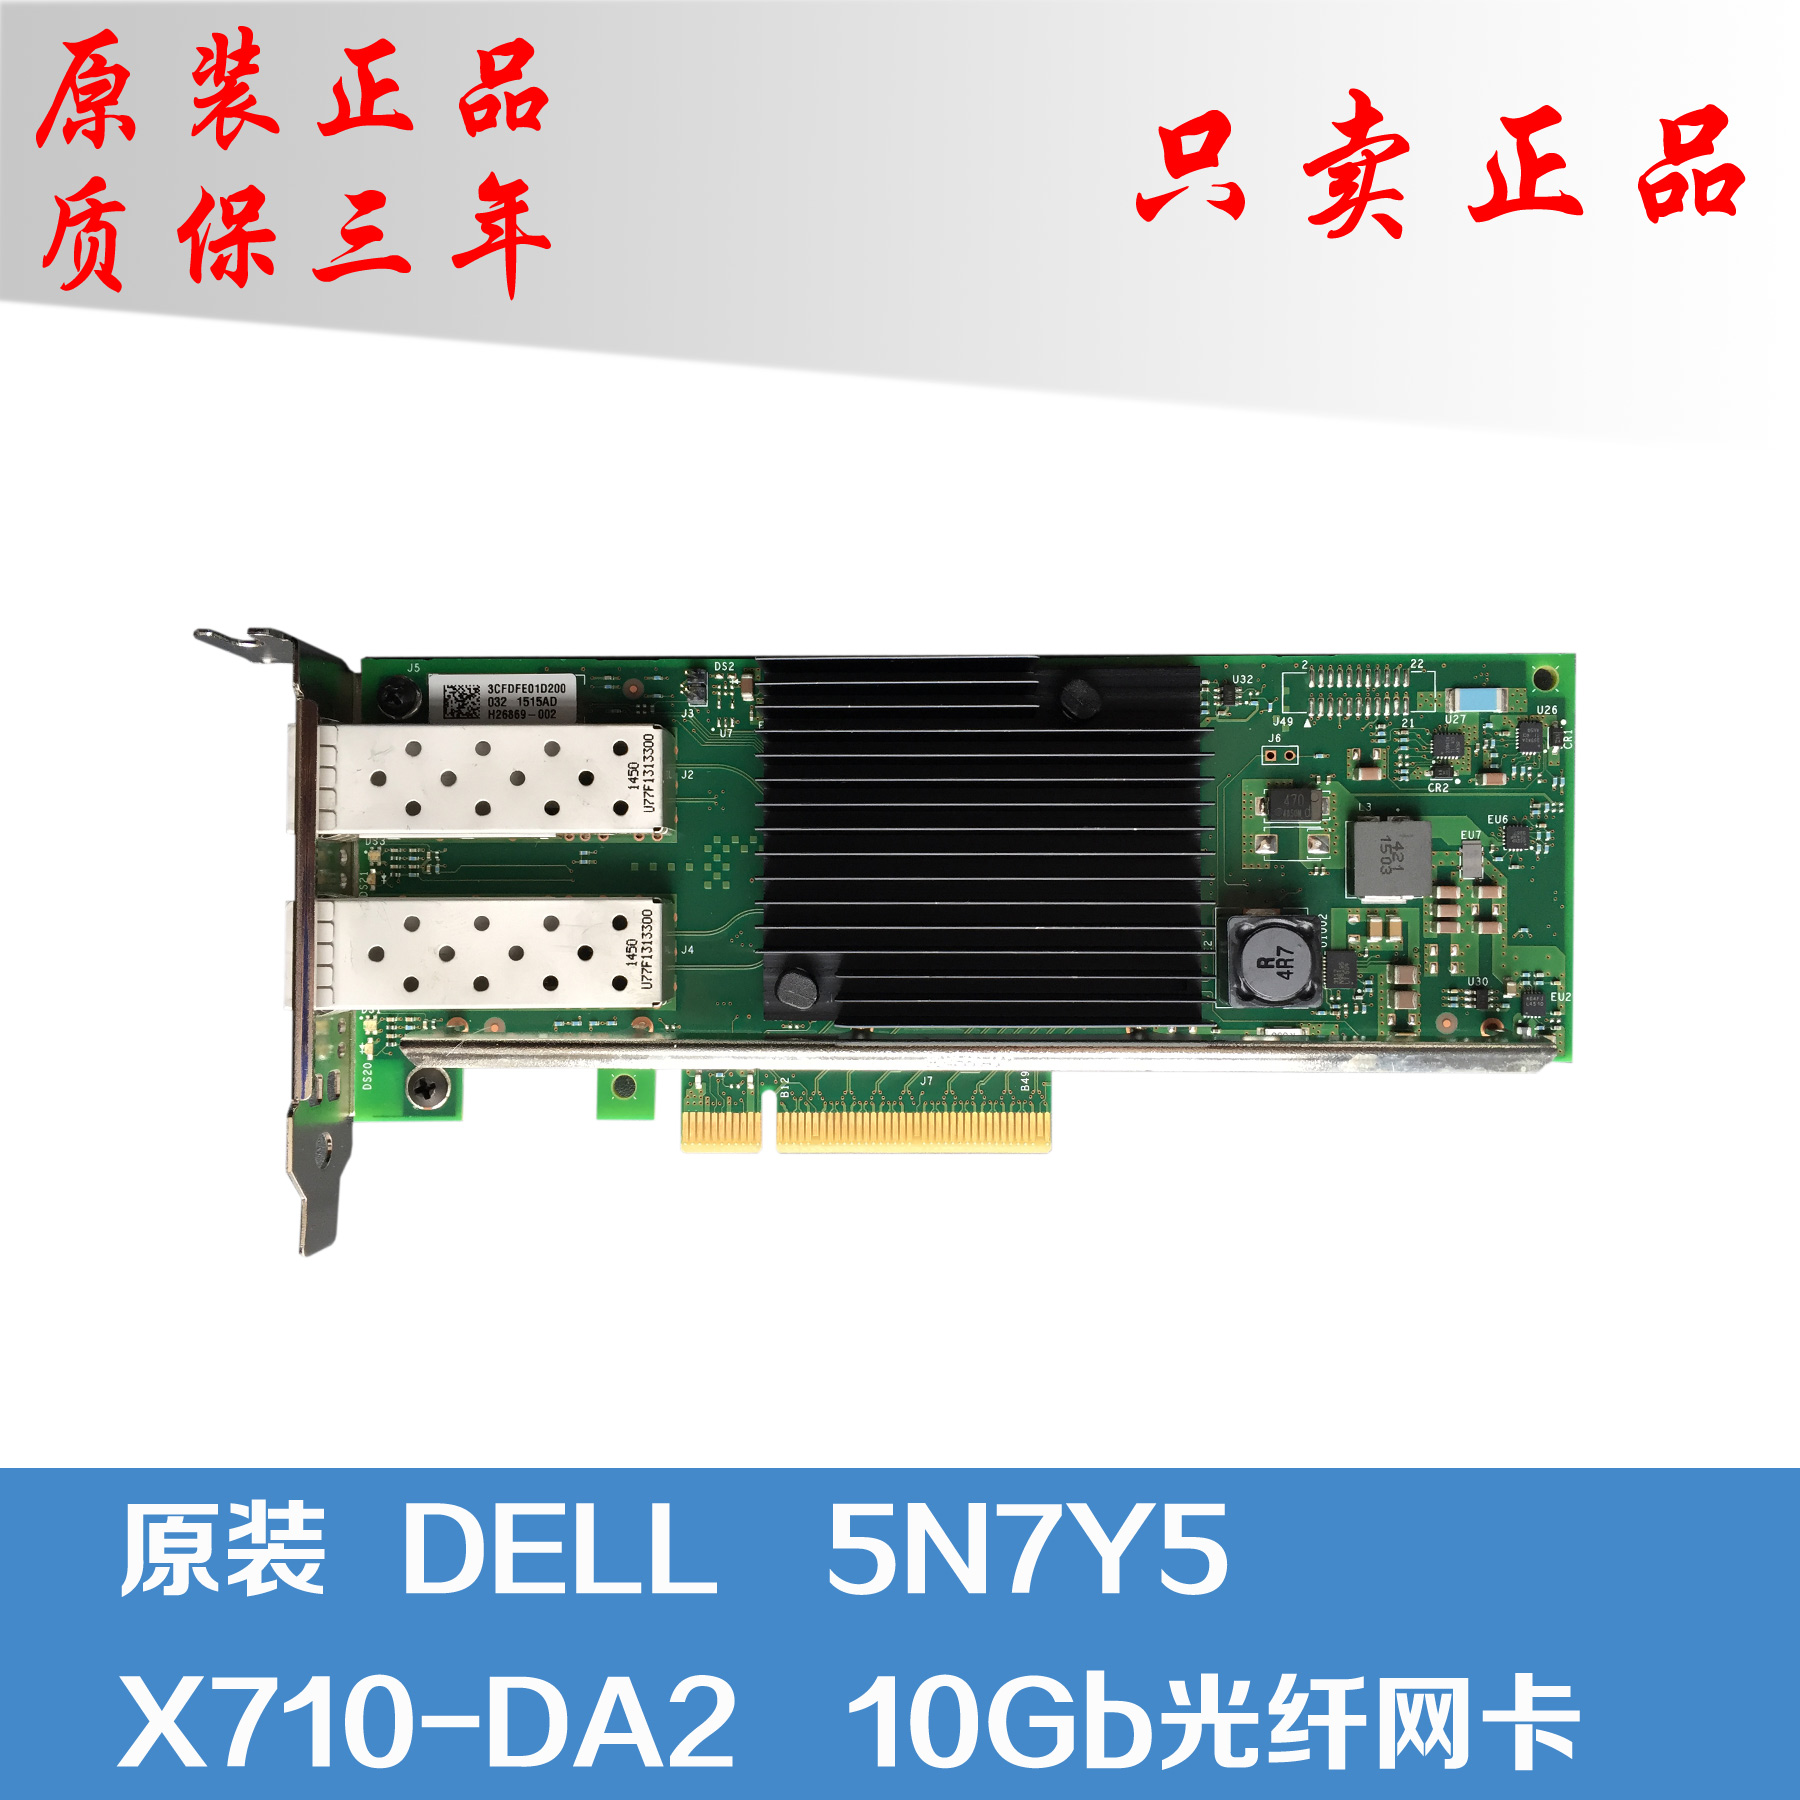 Original DELL X710-DA2 05N7Y5 Dell network card 10GB dual port optical  network card Y5M7N